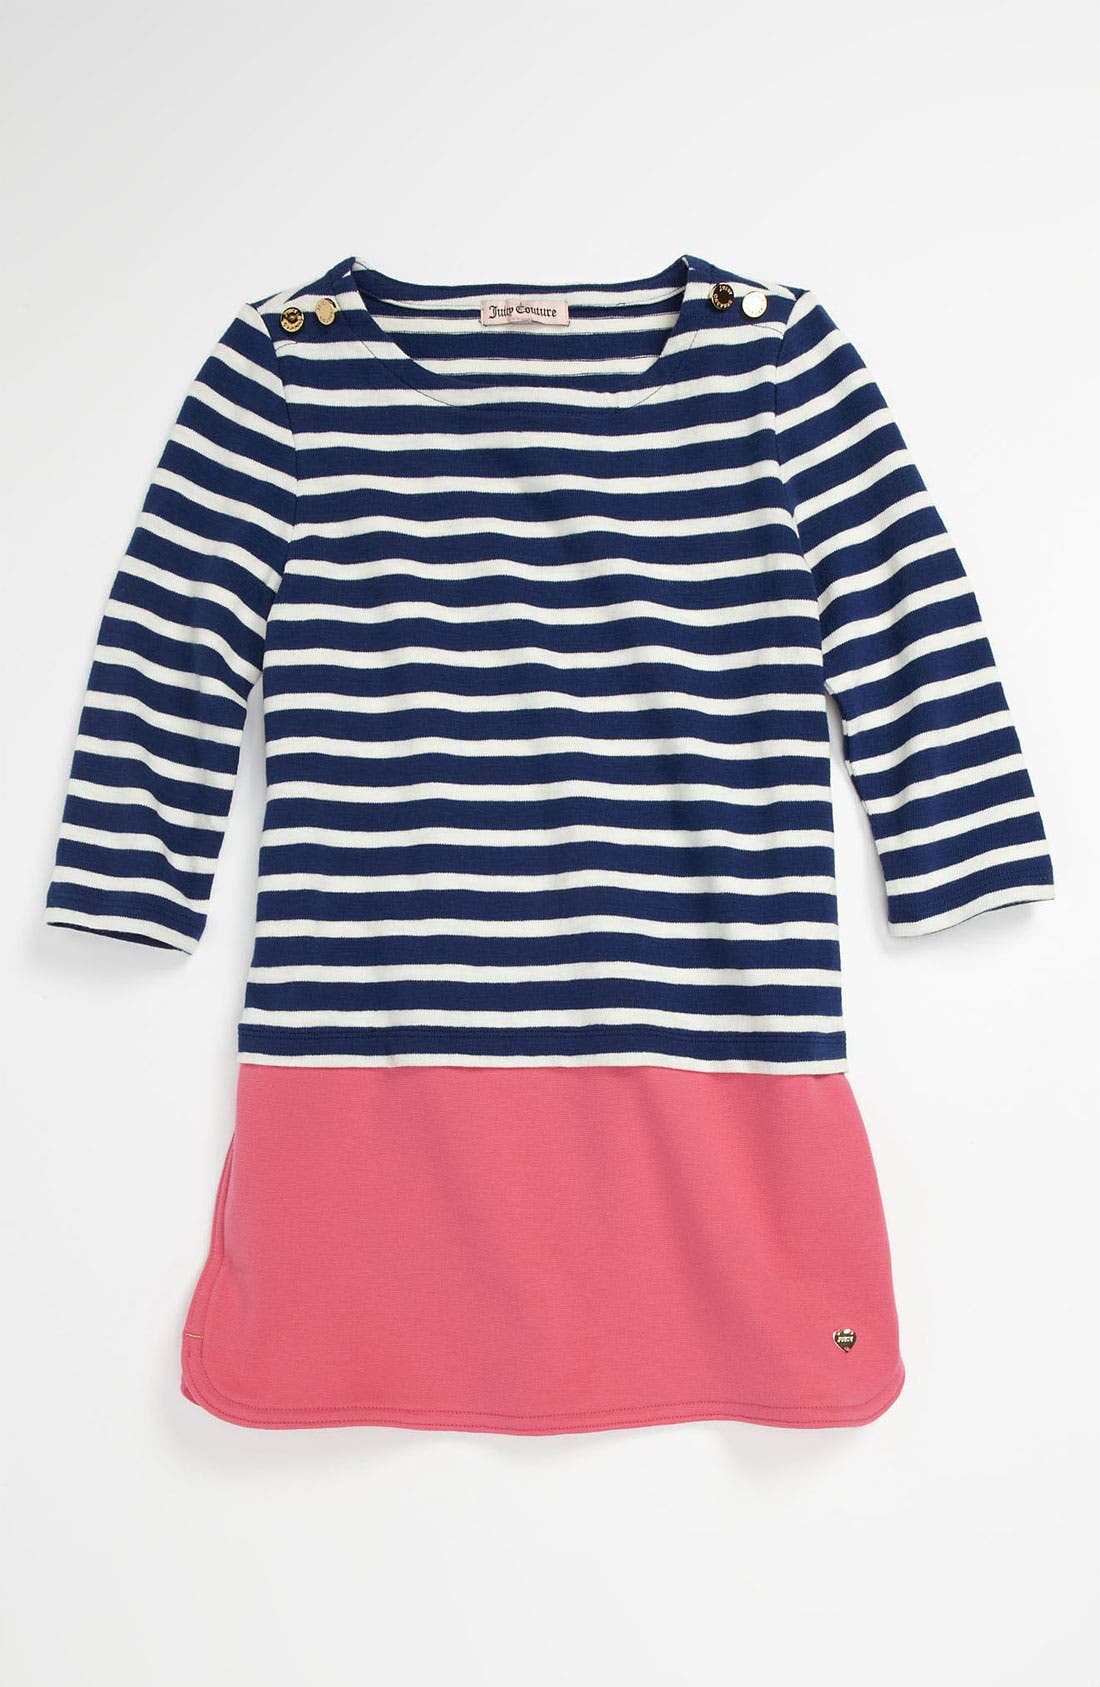 Alternate Image 1 Selected - Juicy Couture Ponte Knit Minidress (Little Girls & Big Girls)